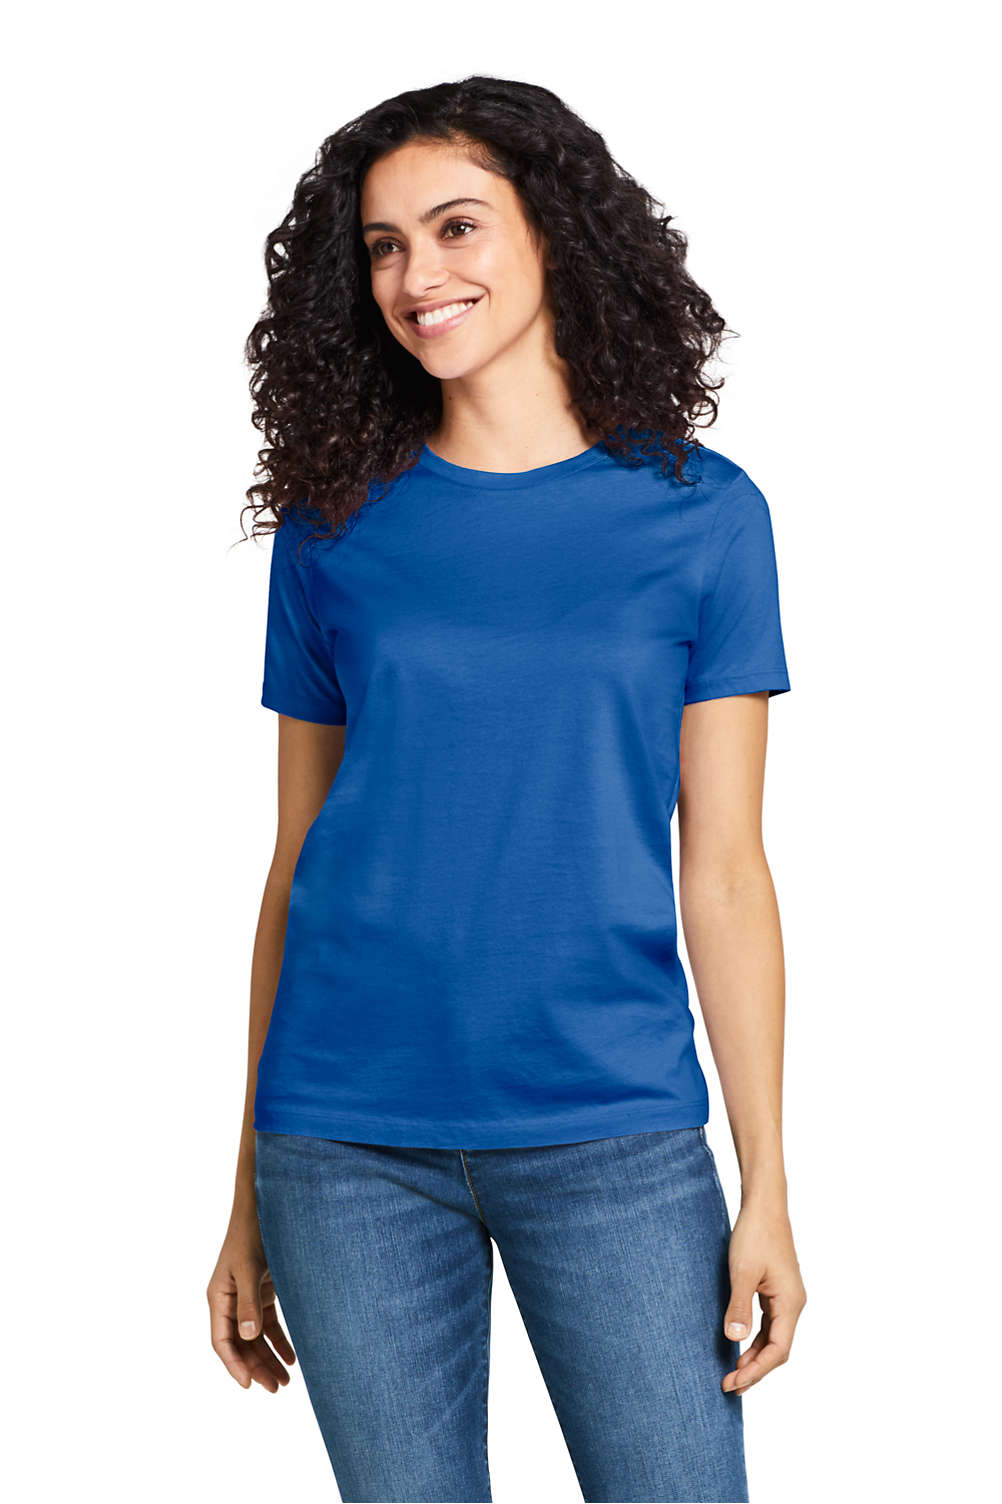 5915432d Women's Supima Cotton Short Sleeve T-shirt - Relaxed Crewneck from Lands'  End